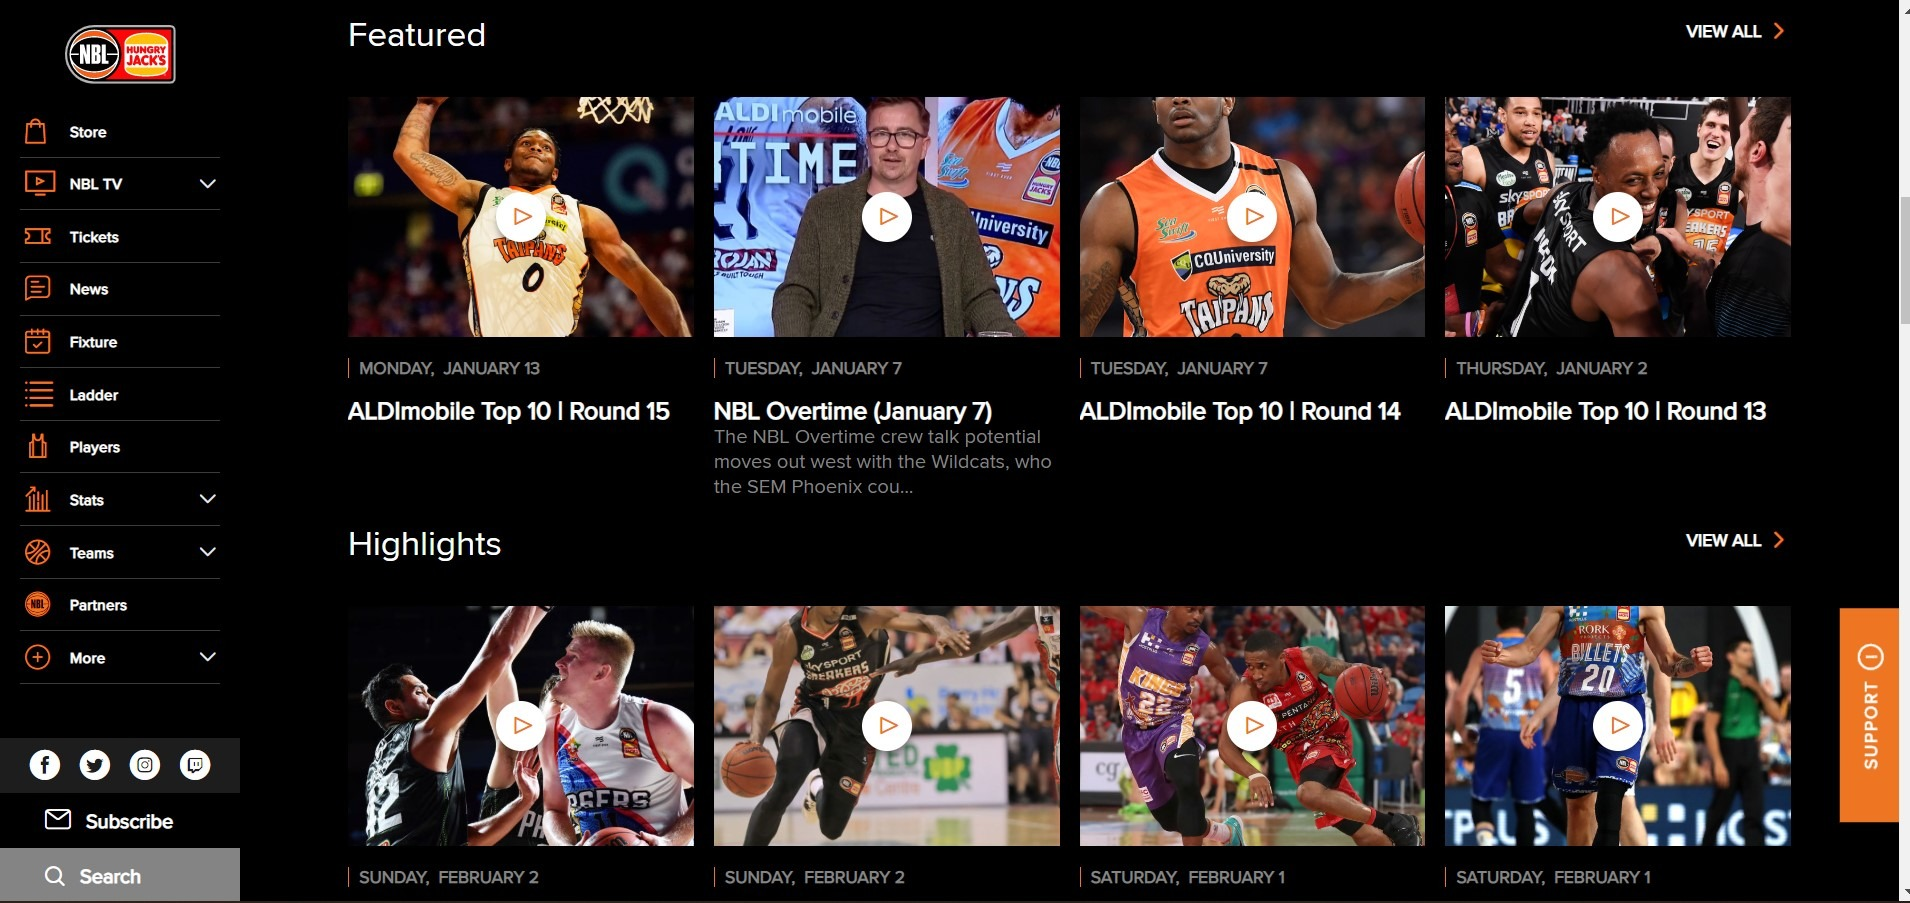 nbl tv guide, nbl tv coupon, nbl tv channel, nbl tv app, nbl tv schedule free to air, nbl tv all access pass, nbl tv apk, nbl tv broadcast, nbl tv 2019, nbl broadcast 2019, nbl tv for free, adelaide 36ers live stream, who funds sbs, what frequency is sbs tv, tv sbs, is nbl on free to air tv, nbl tv, nbl on tv, nbl channel, nbl broadcast, nbl tv app, nbl tv free, nbl tv aldi, aldi mobile nbl tv, aldi nbl tv, nbl on free to air tv, nbl tv account, nbl on tv today, nbl tv login, nbl on tv 2018, nbl tv deal,